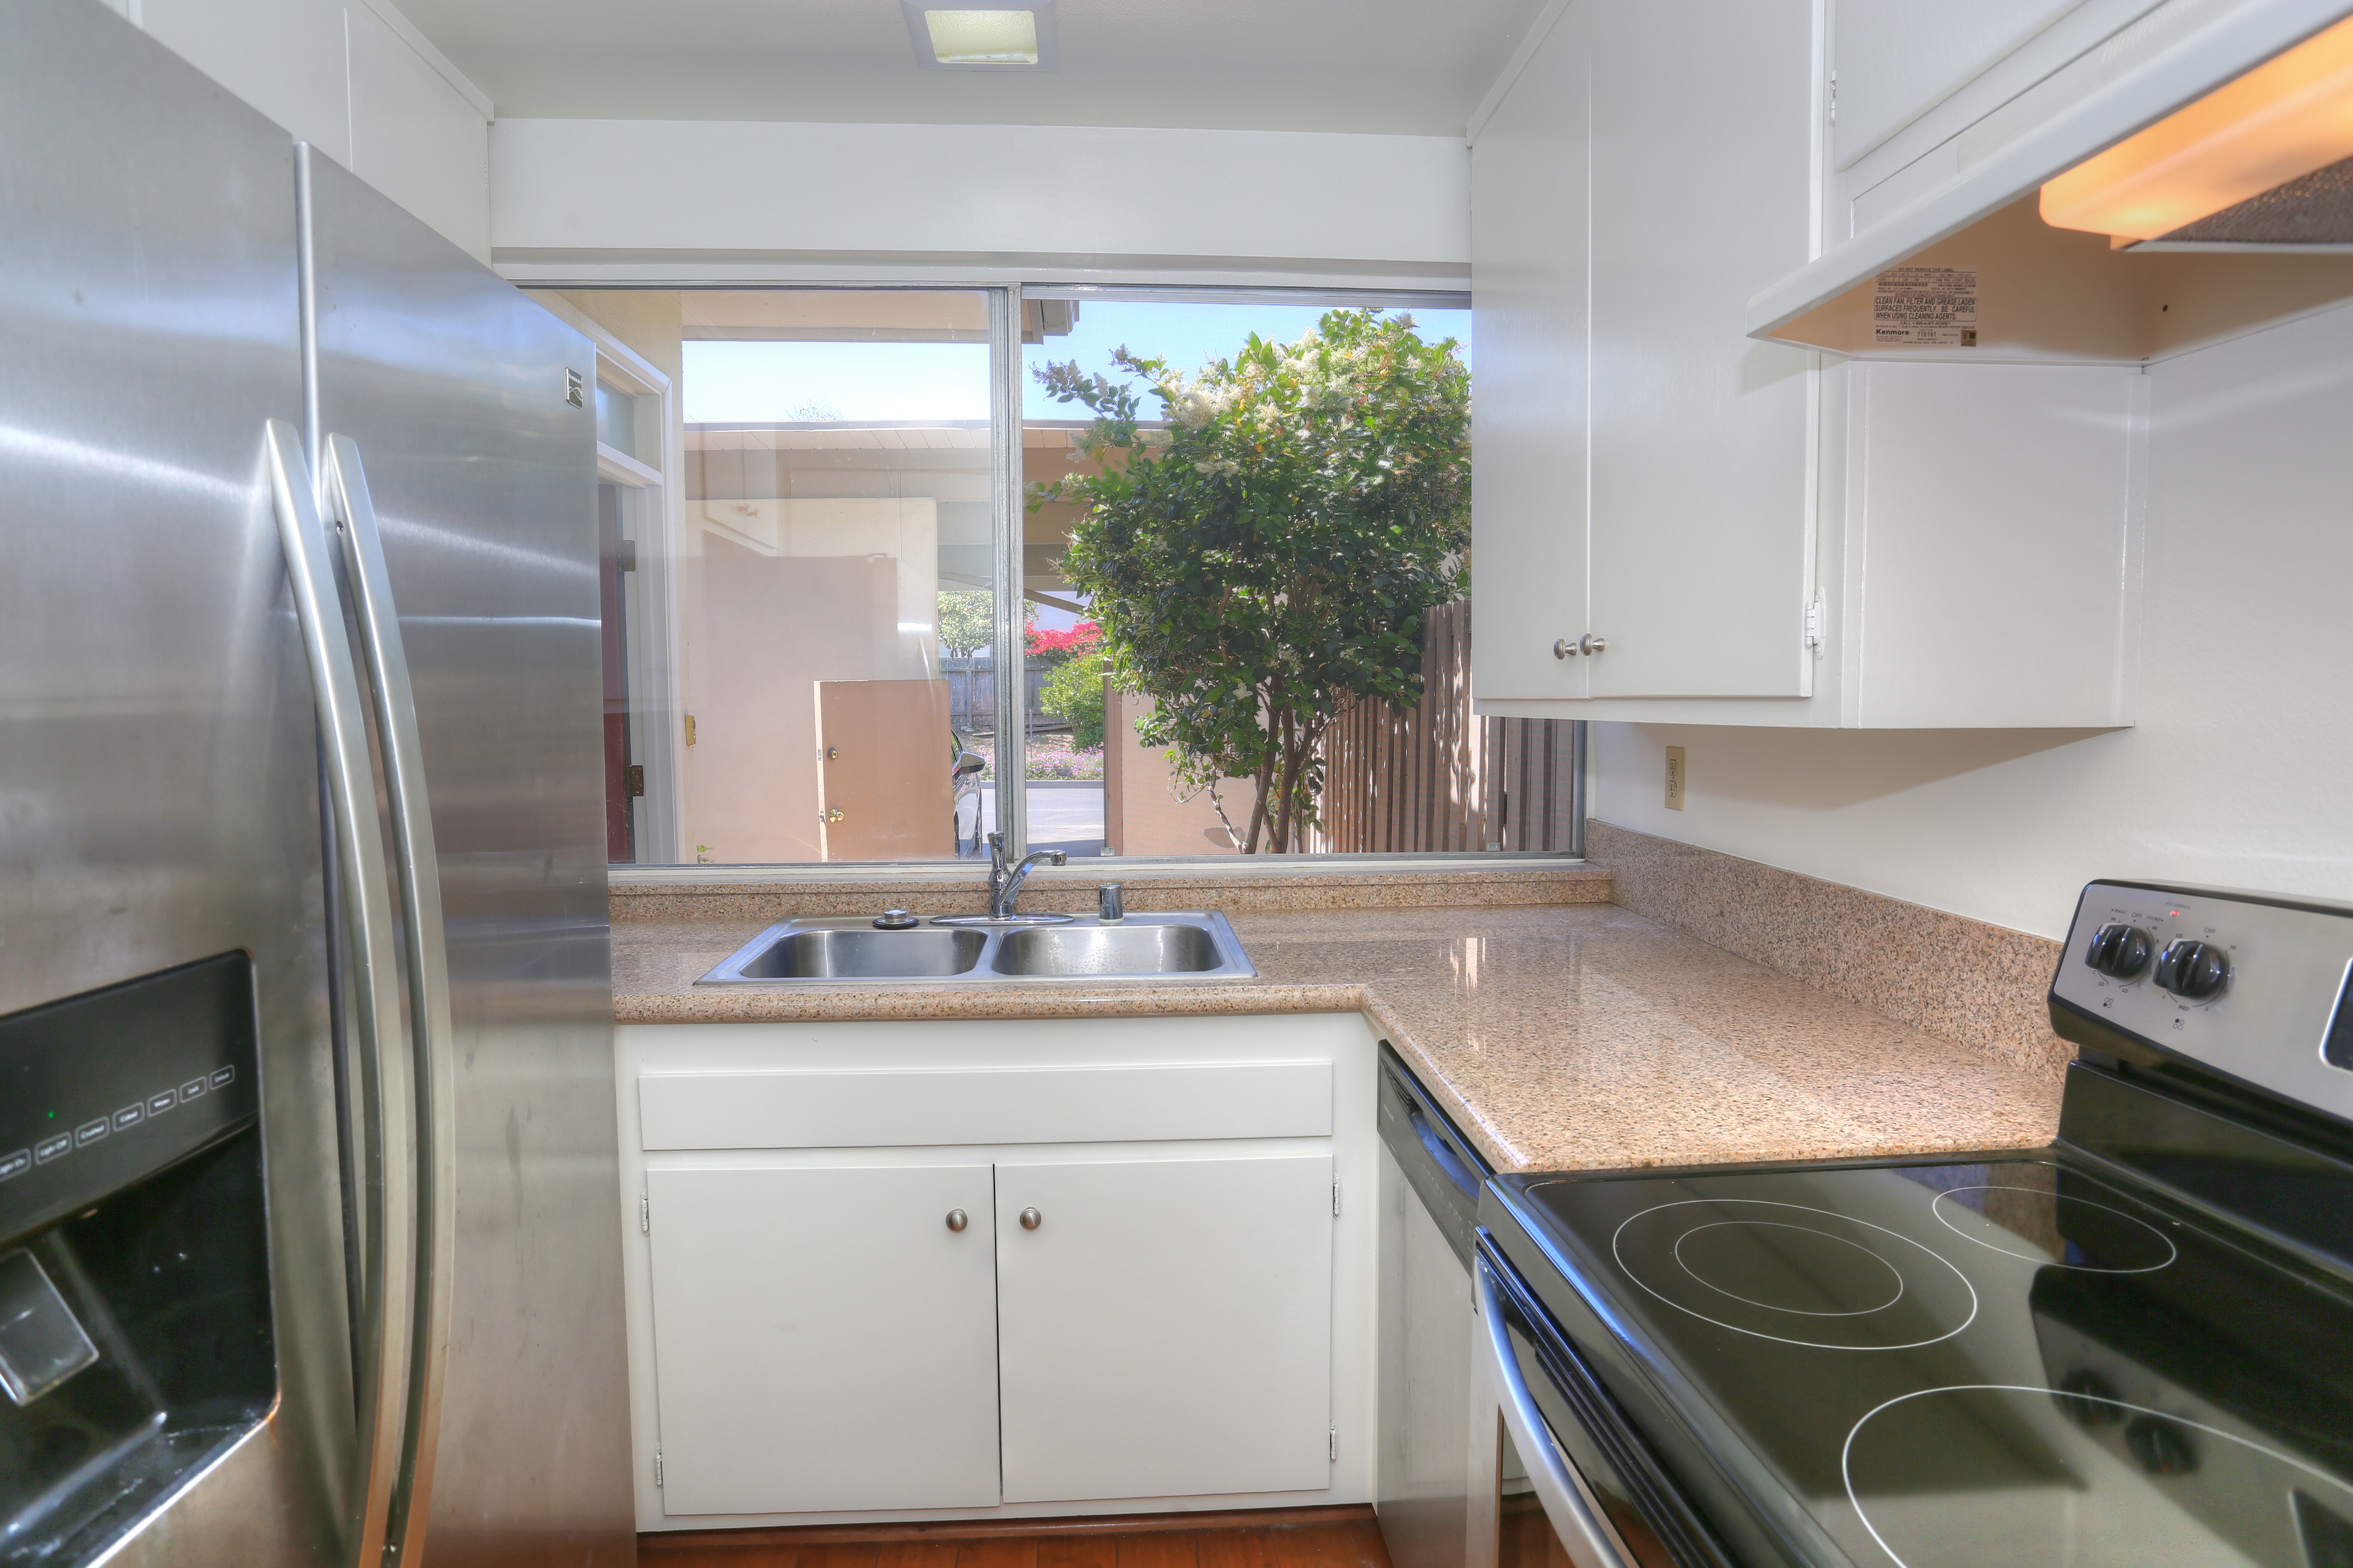 Kitchen 5068 Birchwood